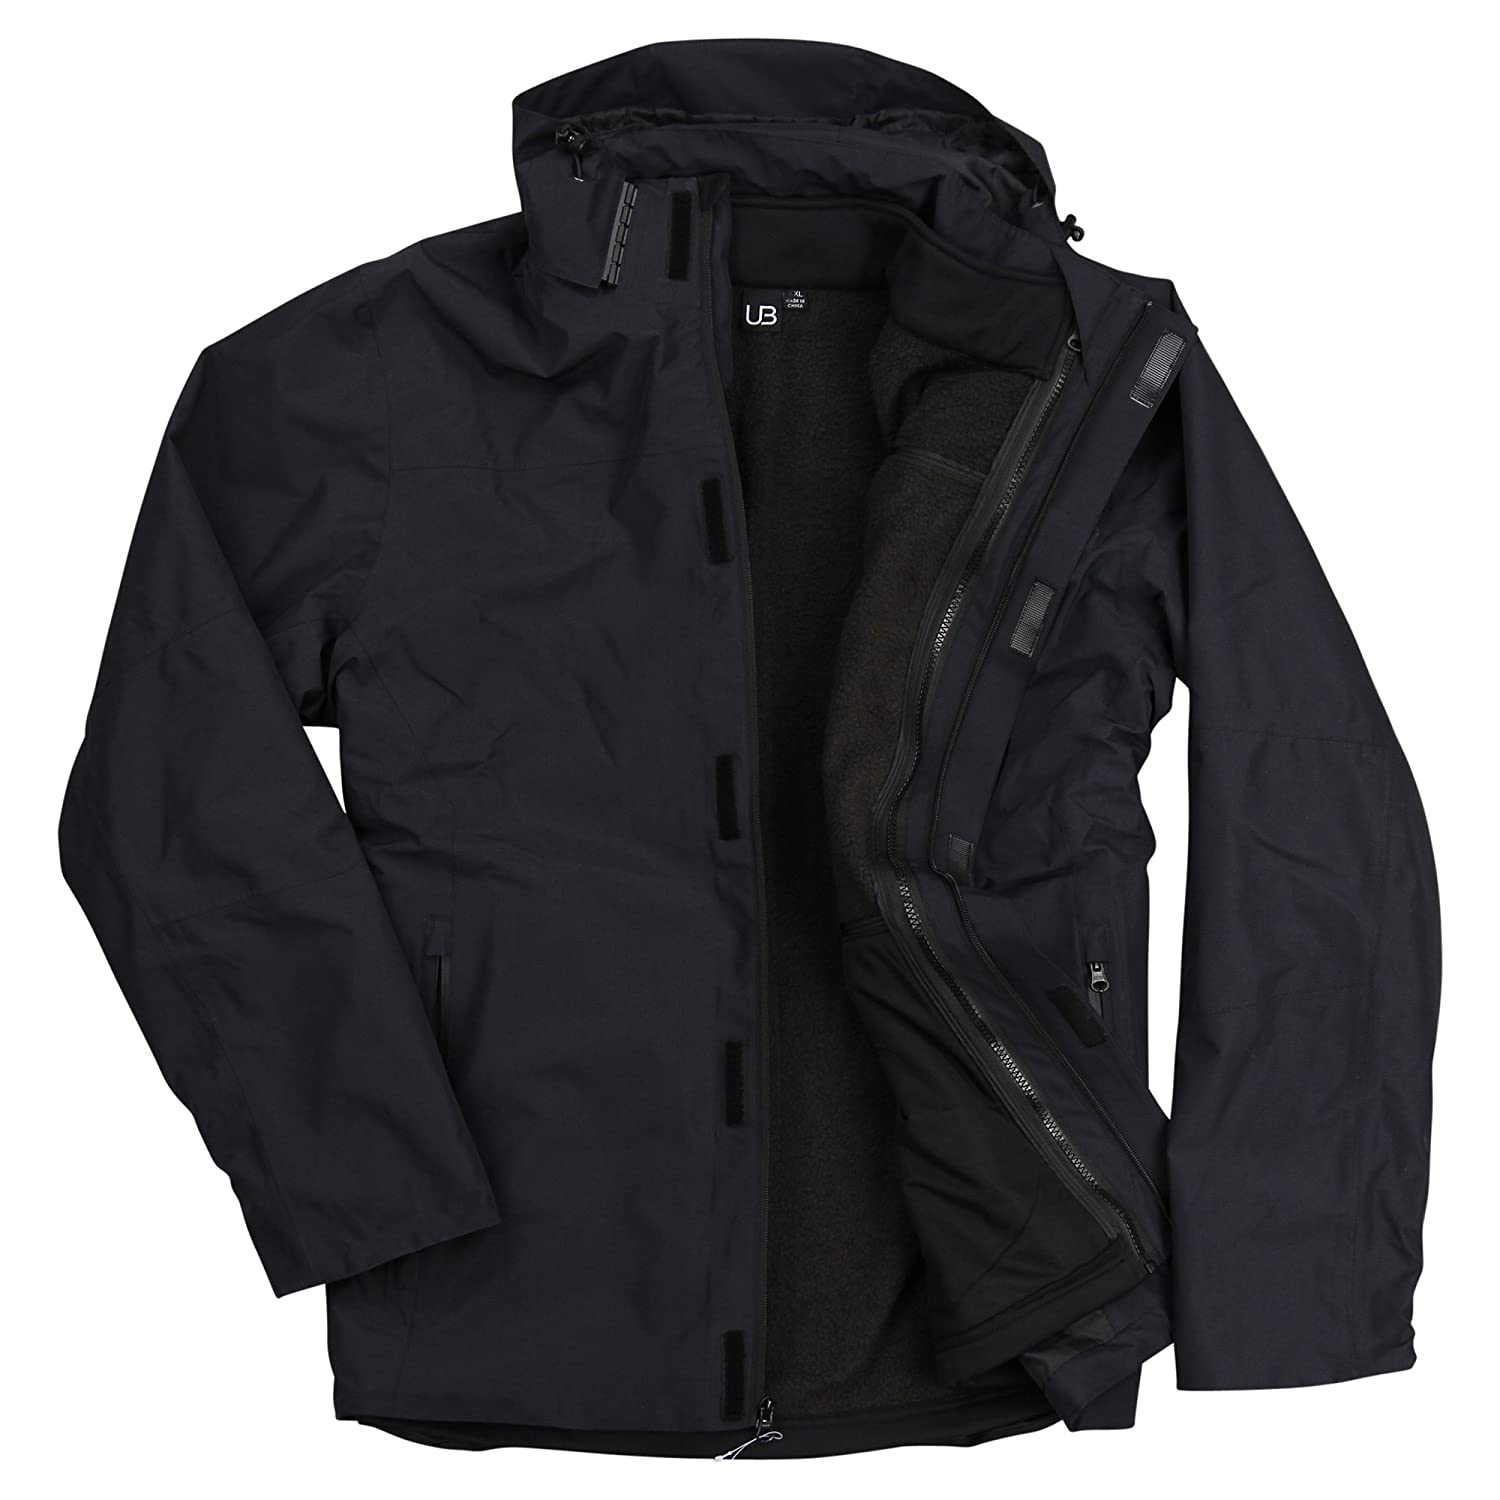 Men's Ripstop 3-in-1 Cold Defender Winter Coat